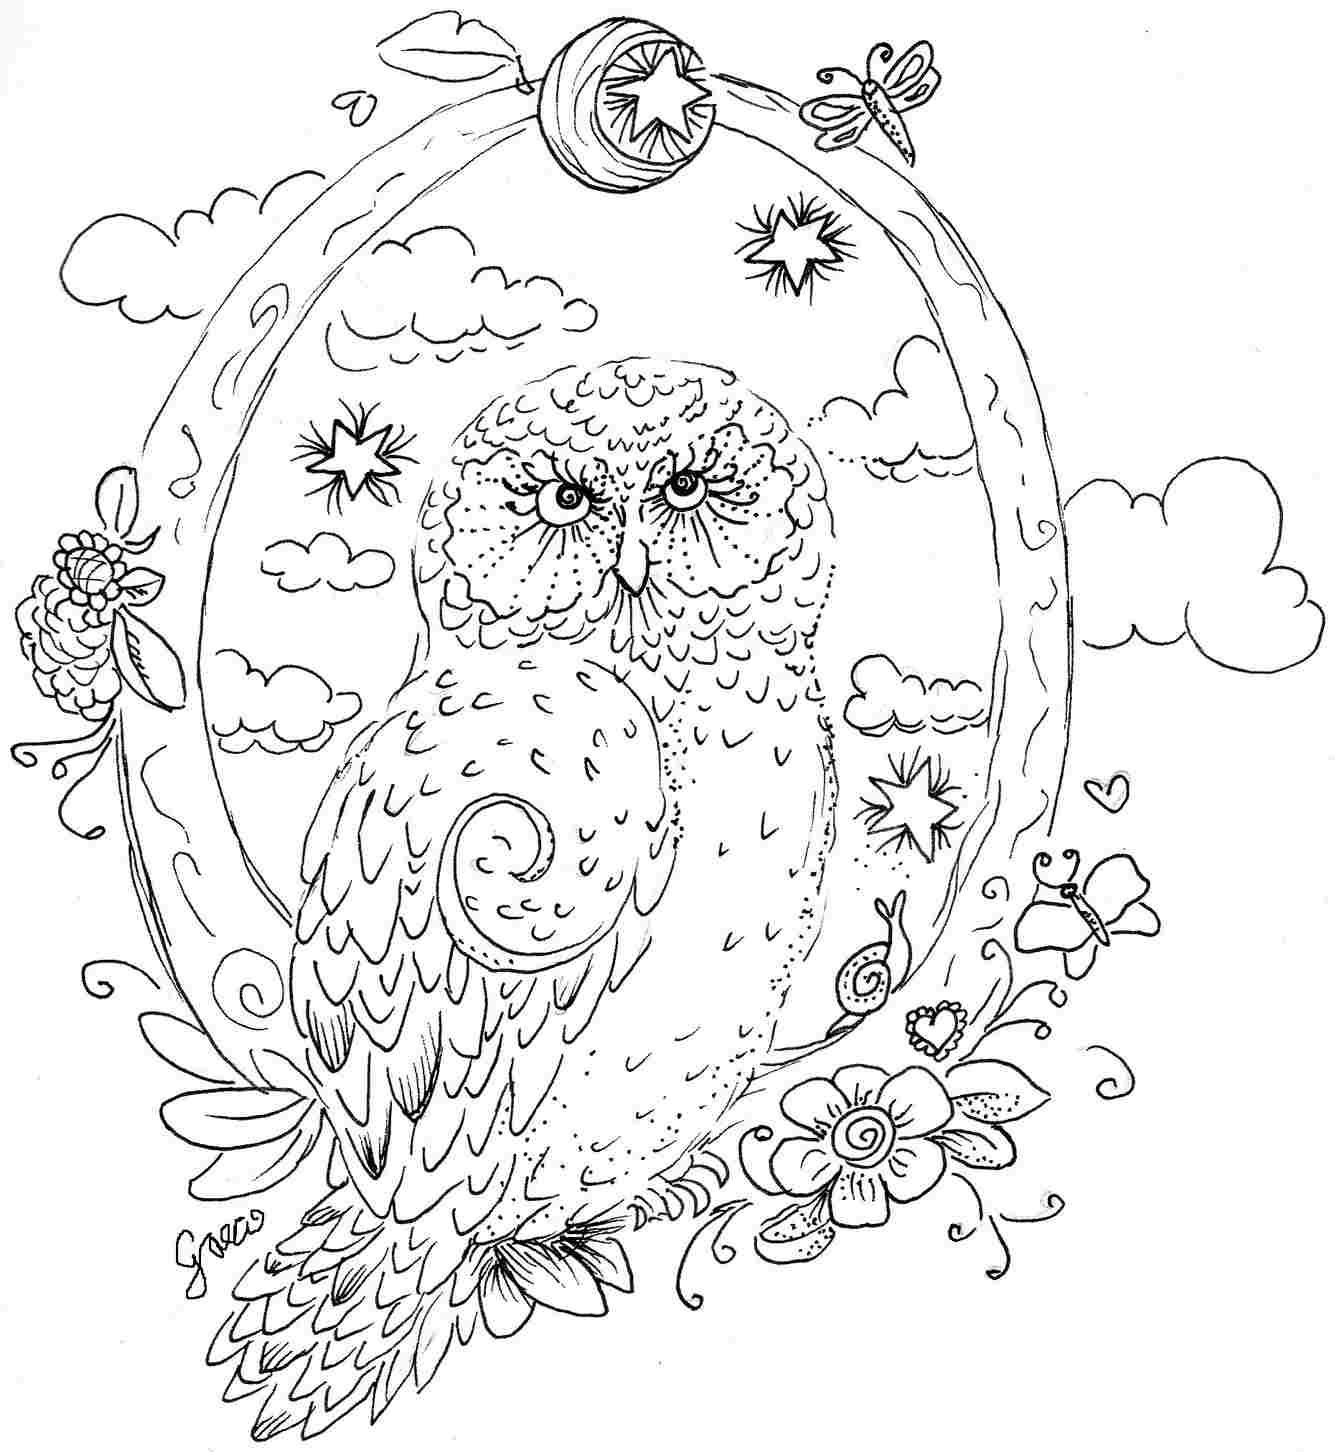 mystical animal coloring pages - photo#23